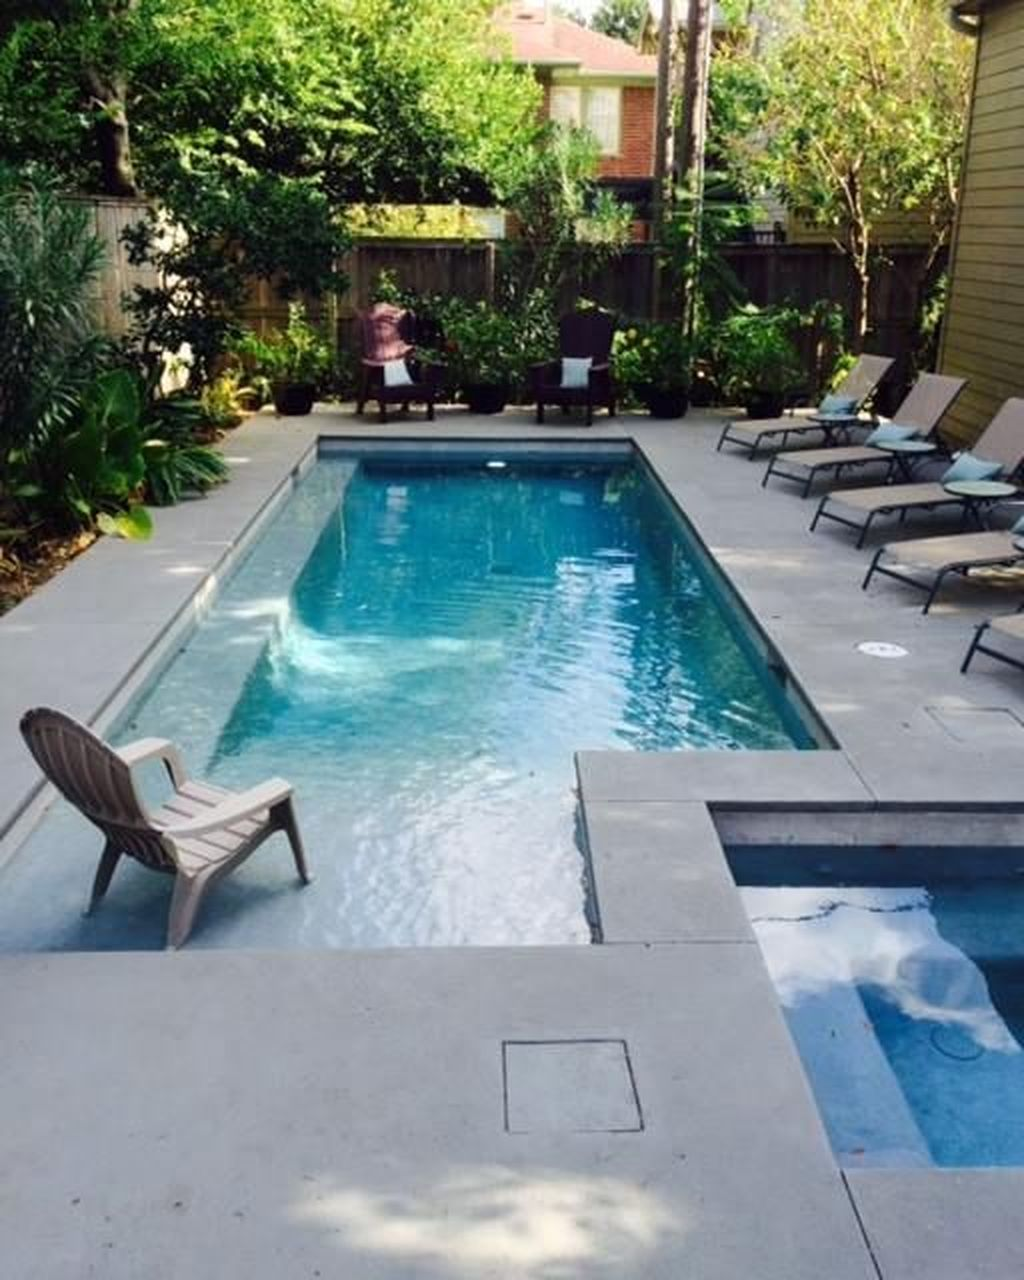 34 Lovely Small Swimming Pool Design Ideas On A Budget Small Pool Design Small Backyard Pools Small Inground Pool